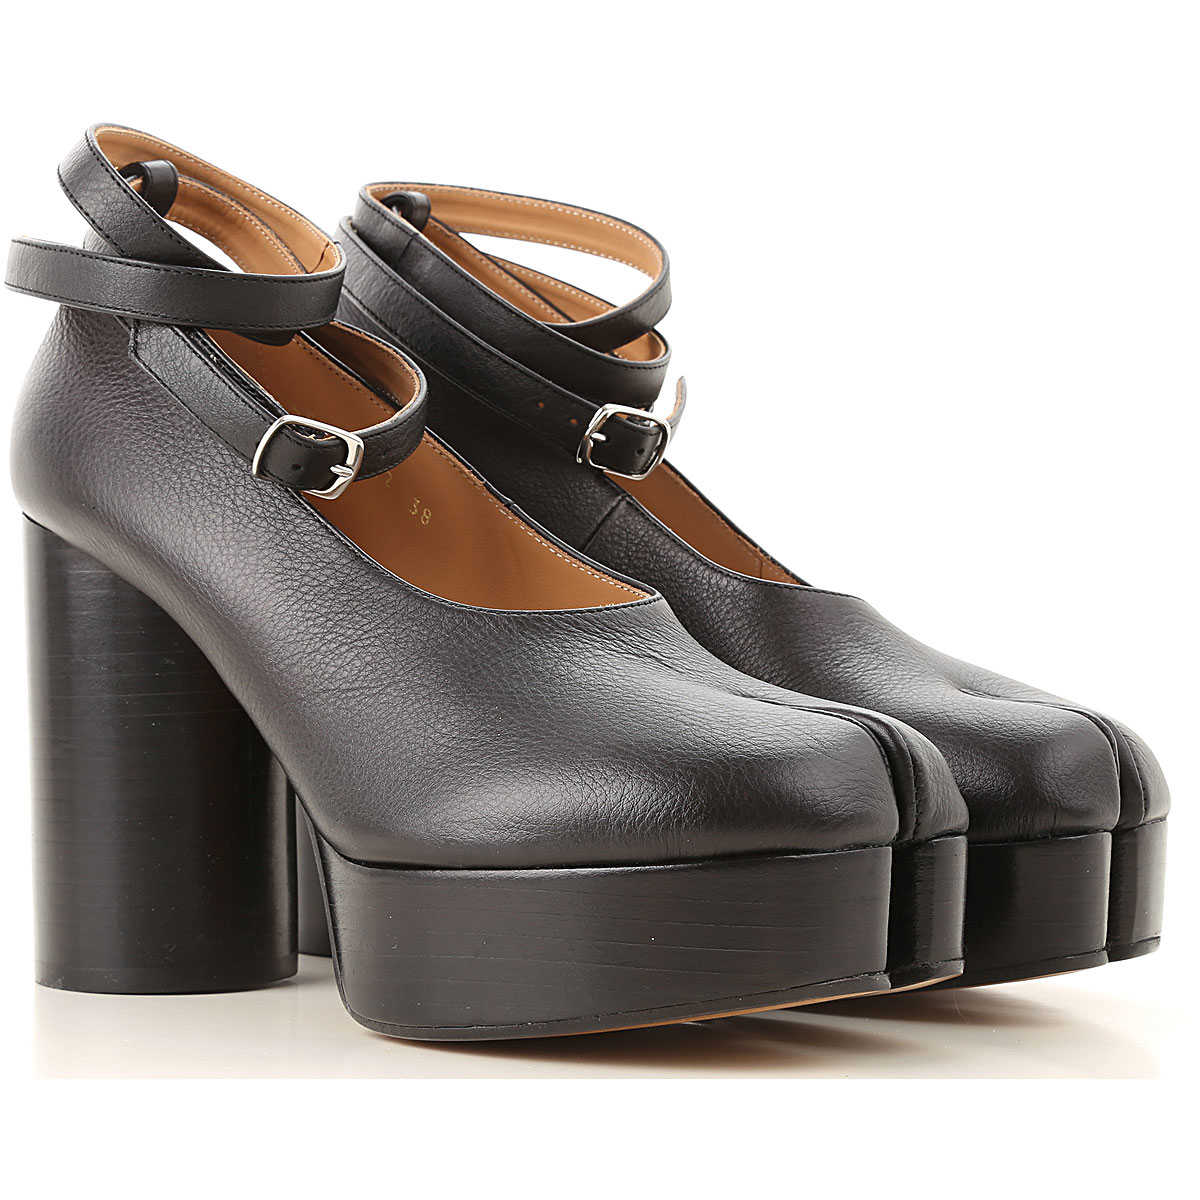 Maison Martin Margiela Wedges for Women Black USA - GOOFASH